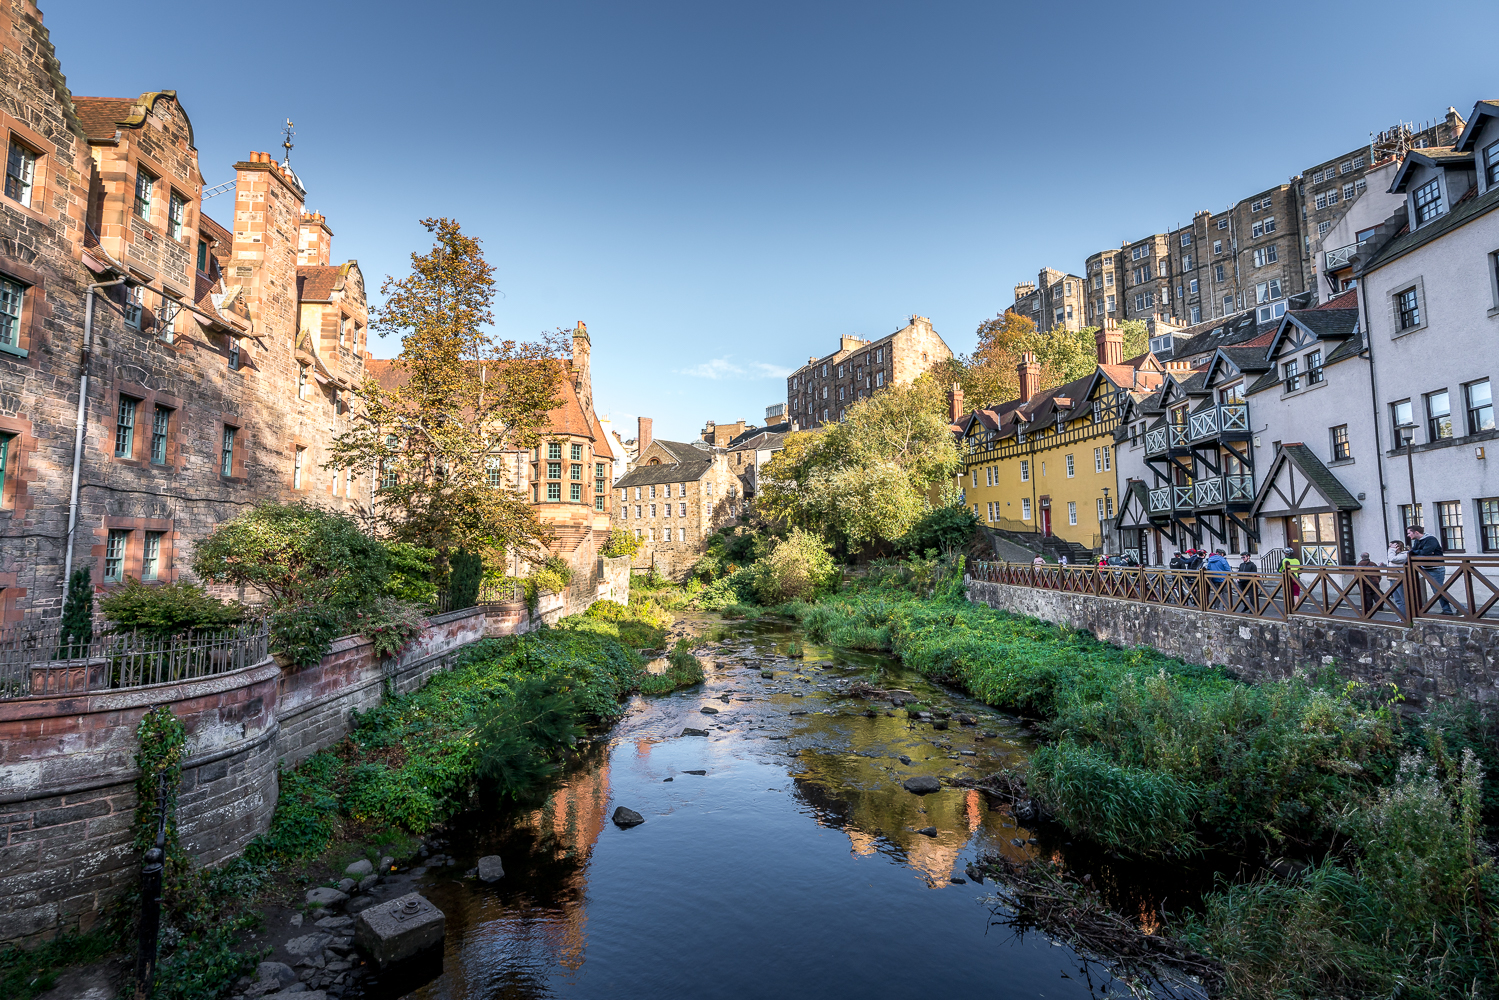 Dean Village, an enclave of quiet beauty just off the busy Royal Mile. Long ago, there were water mills here but now it's an oasis in the city for some very lucky people.